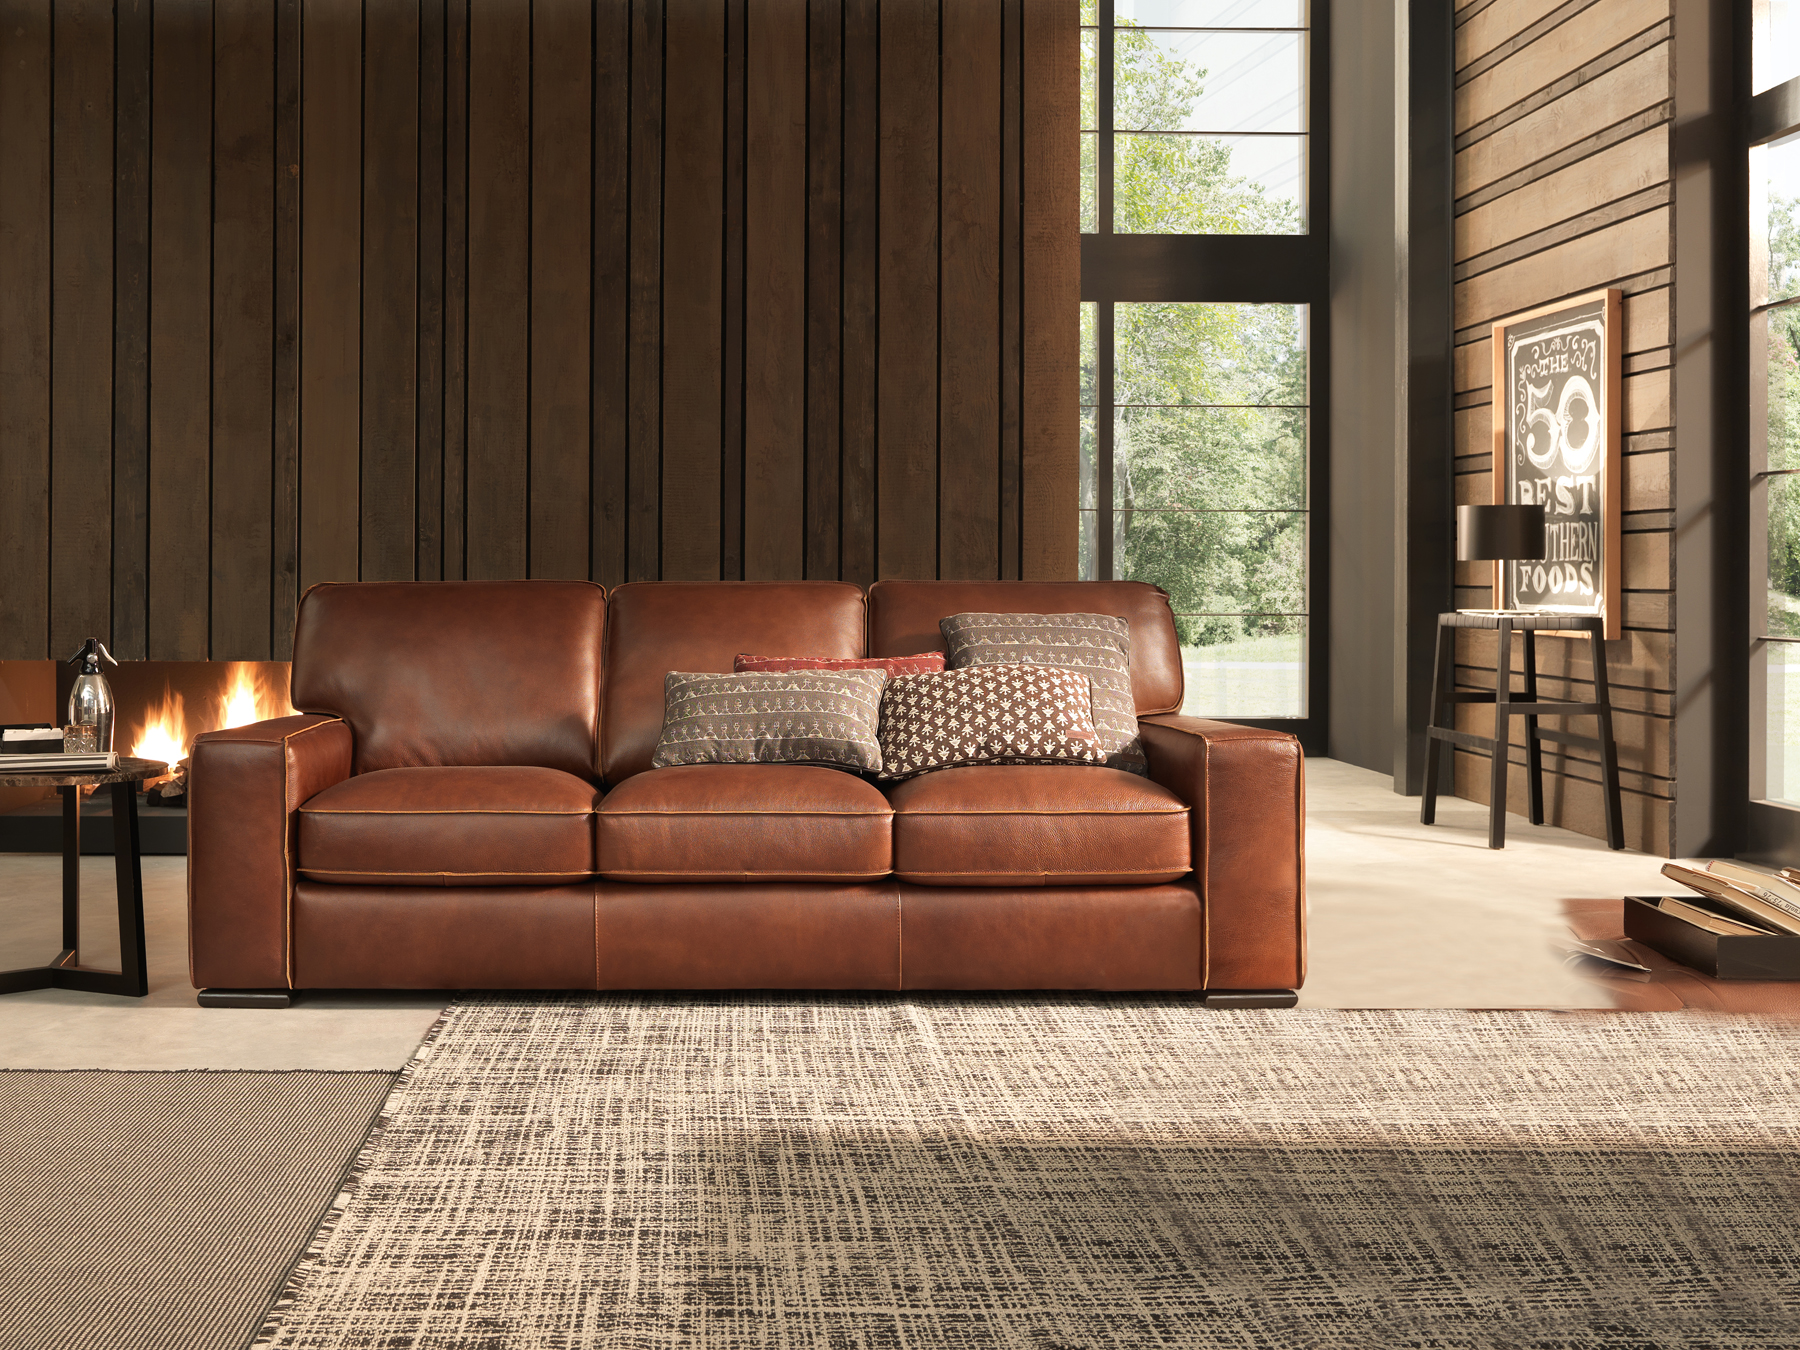 Leather Sofa Furniture Guide - How to Avoid Common Mistakes